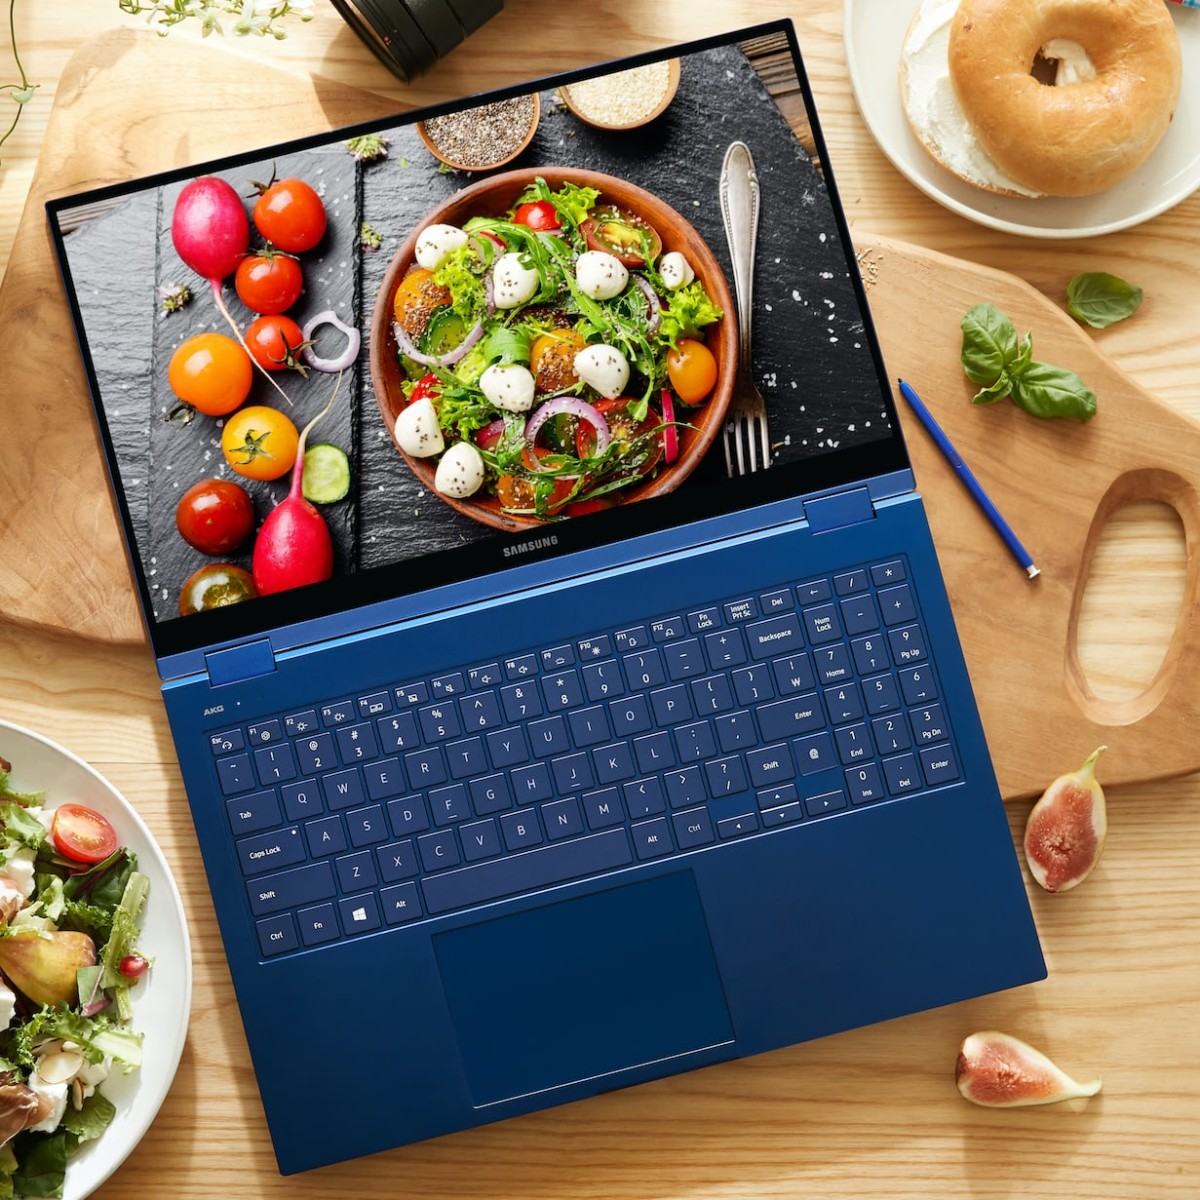 Samsung Galaxy Book Flex Portable Laptop provides a high-performance mobile work experience